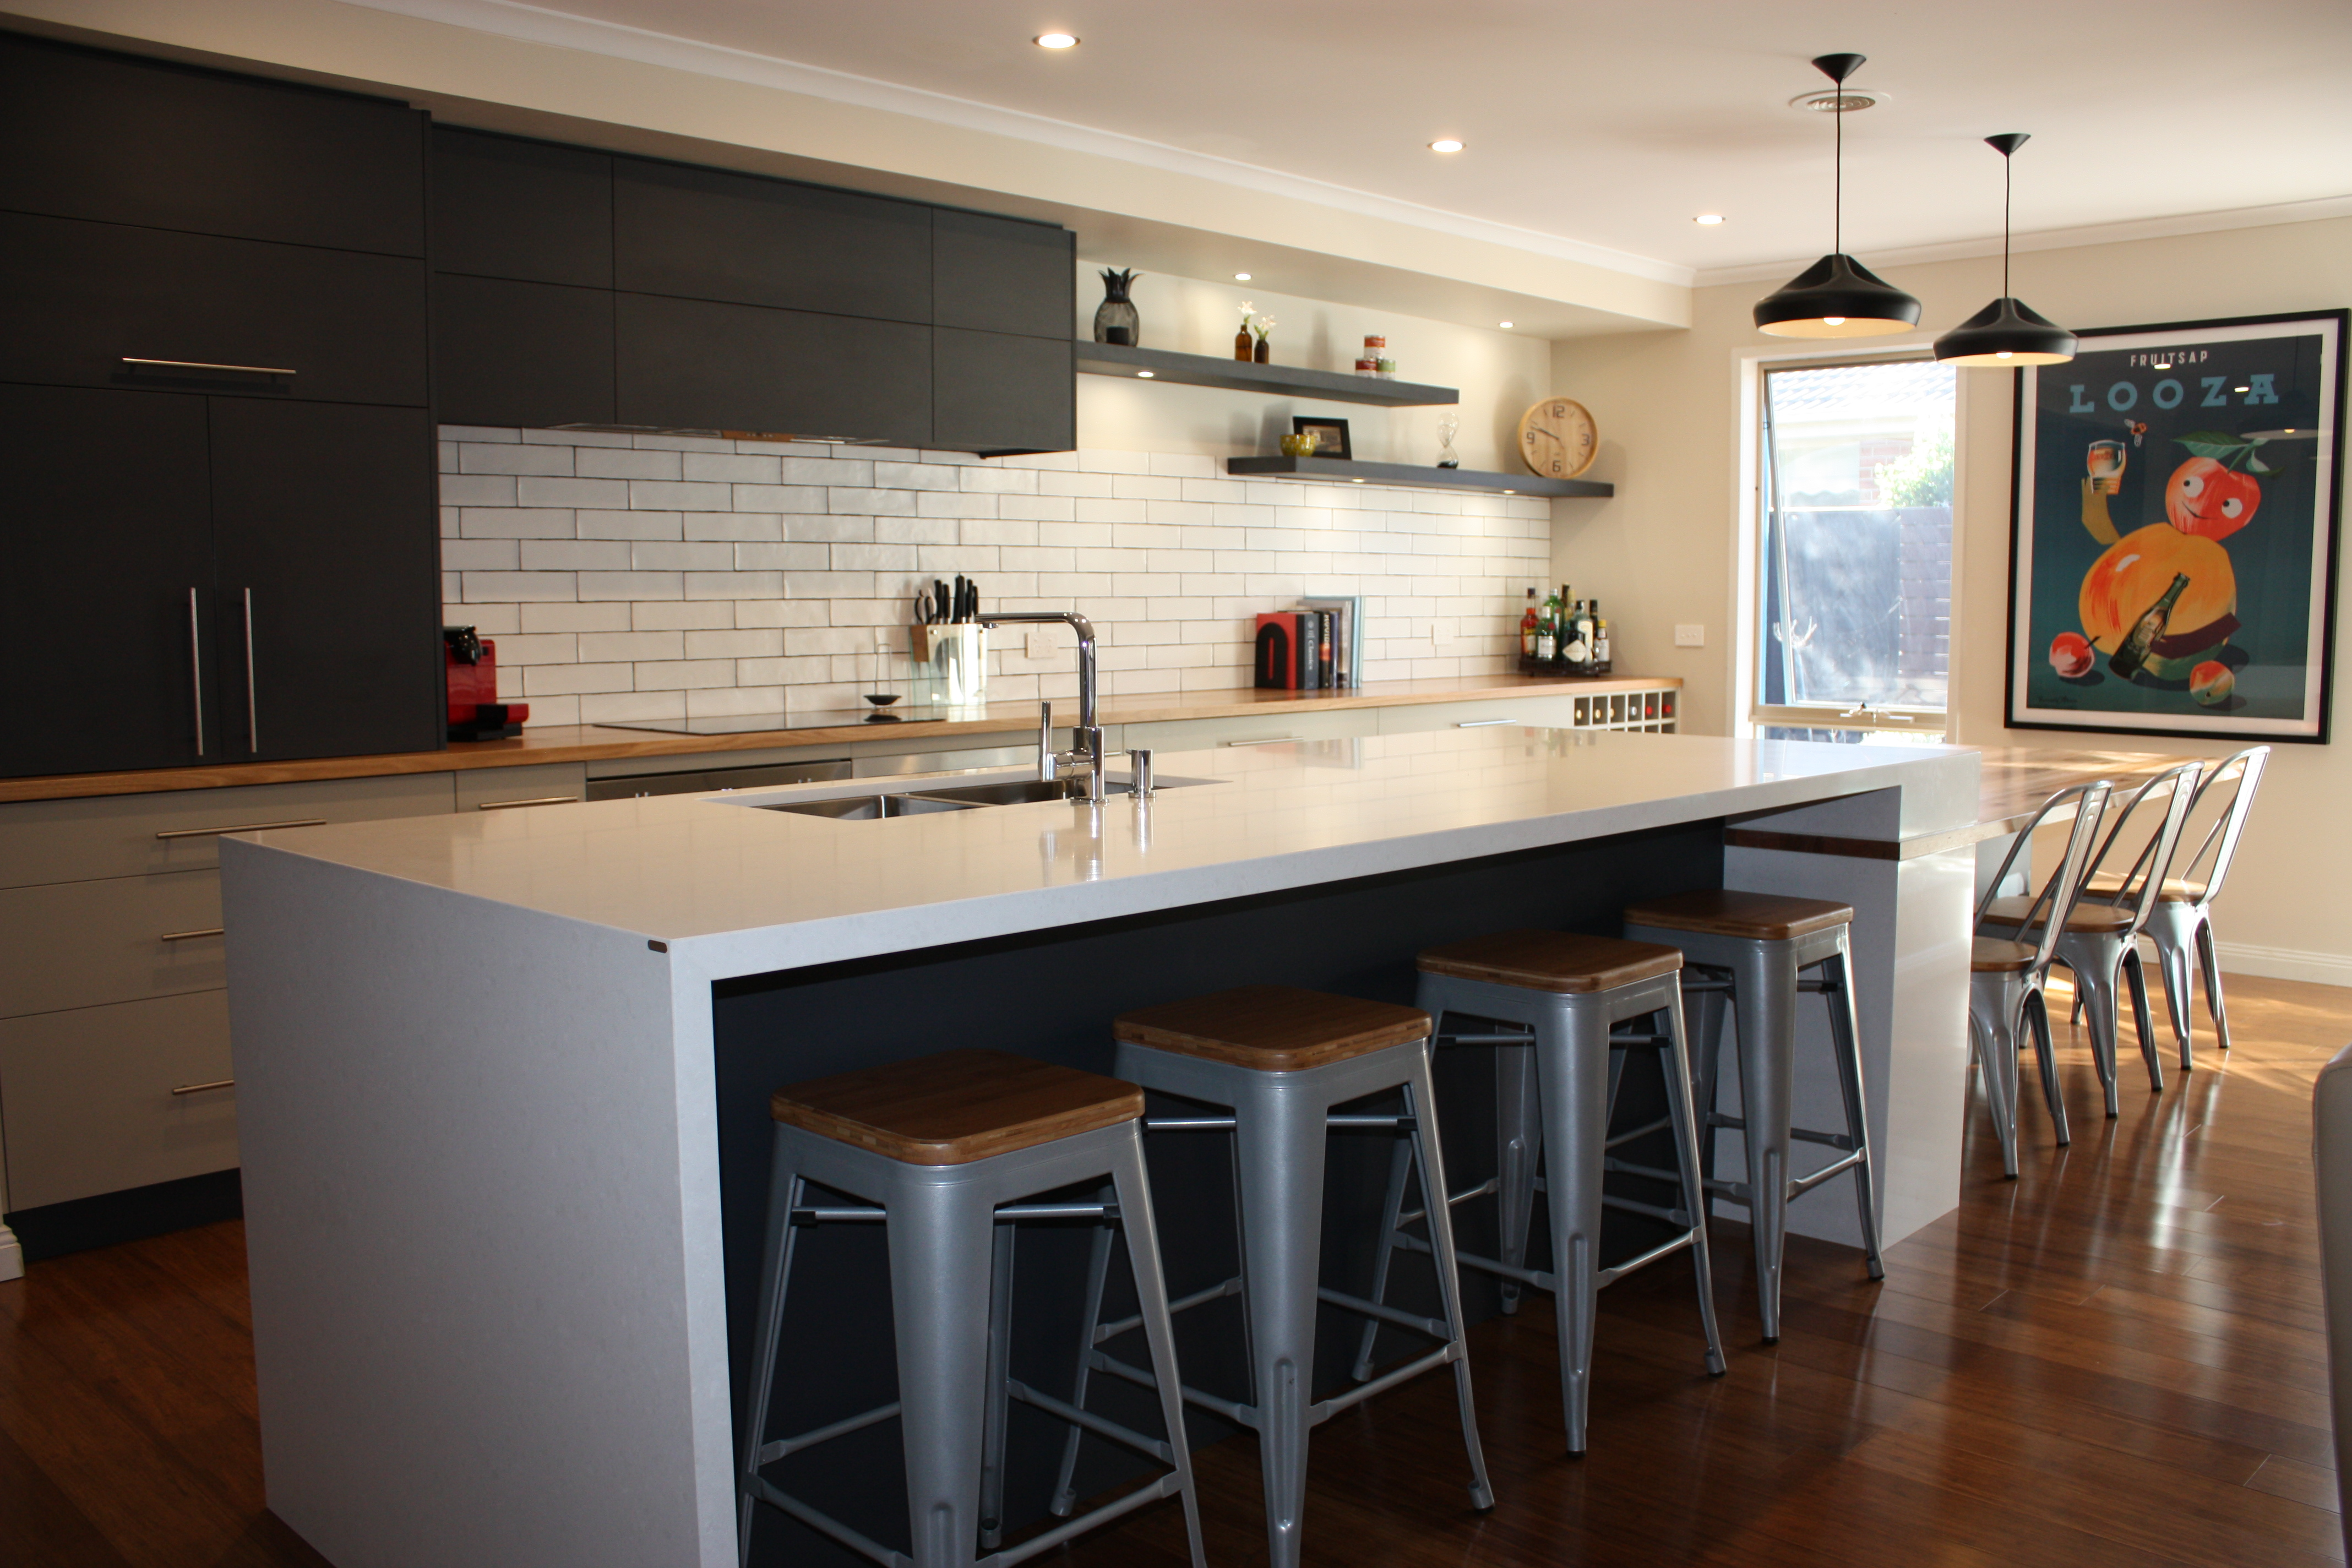 For Over 20 Years We Have Been Servicing Melbourne Homeowners For Their  Quality Cabinetry Needs. For Further Information, Fill Out The Form Below  To Make An ...